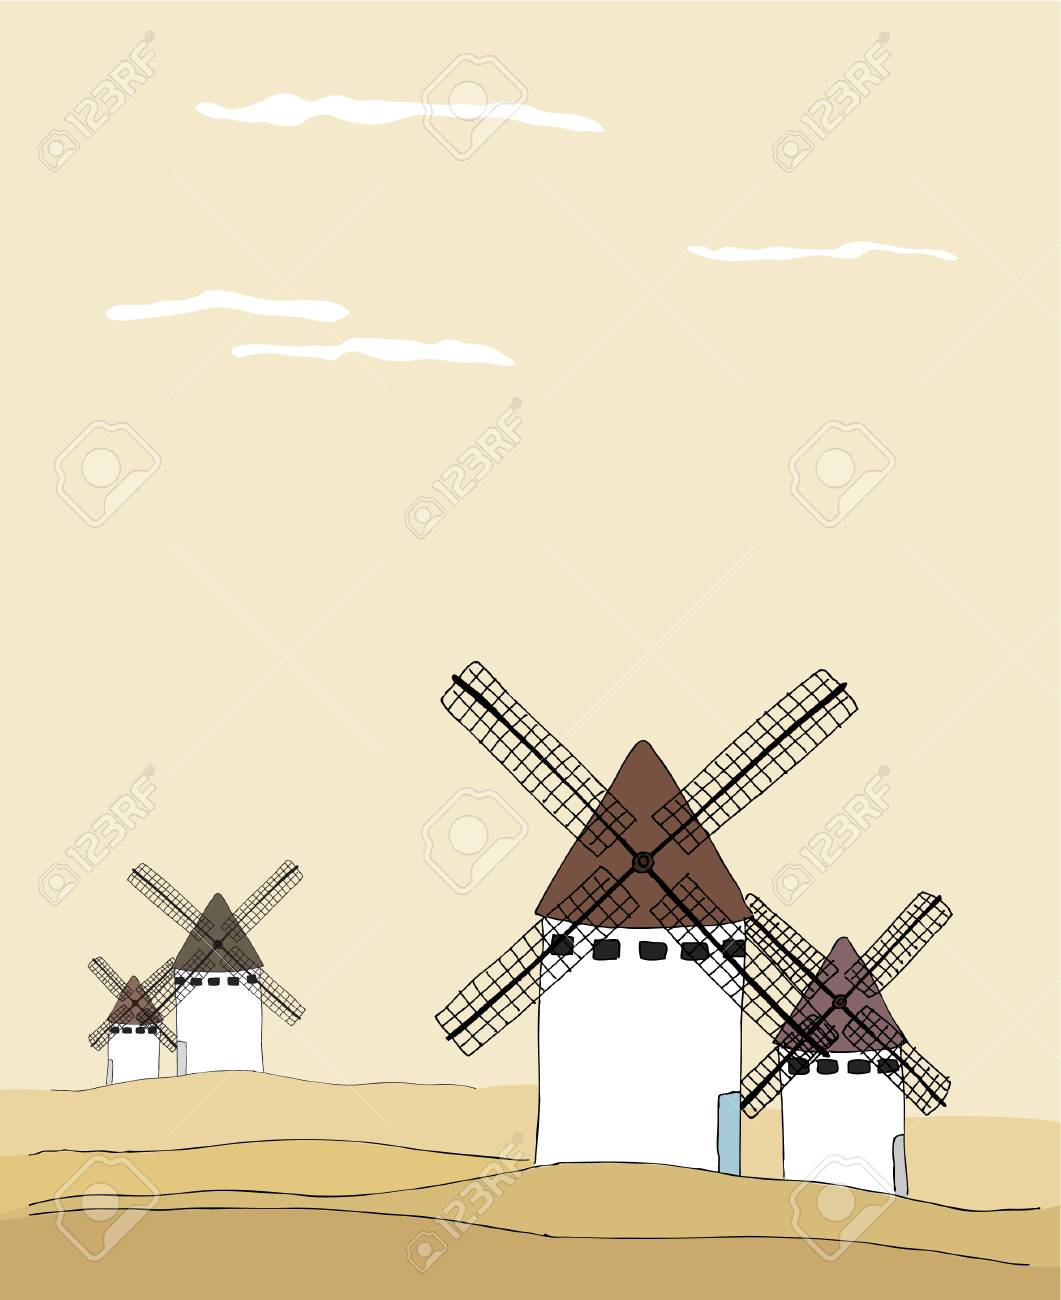 Traditional tranquil landscape with windmills Stock Vector - 5501762